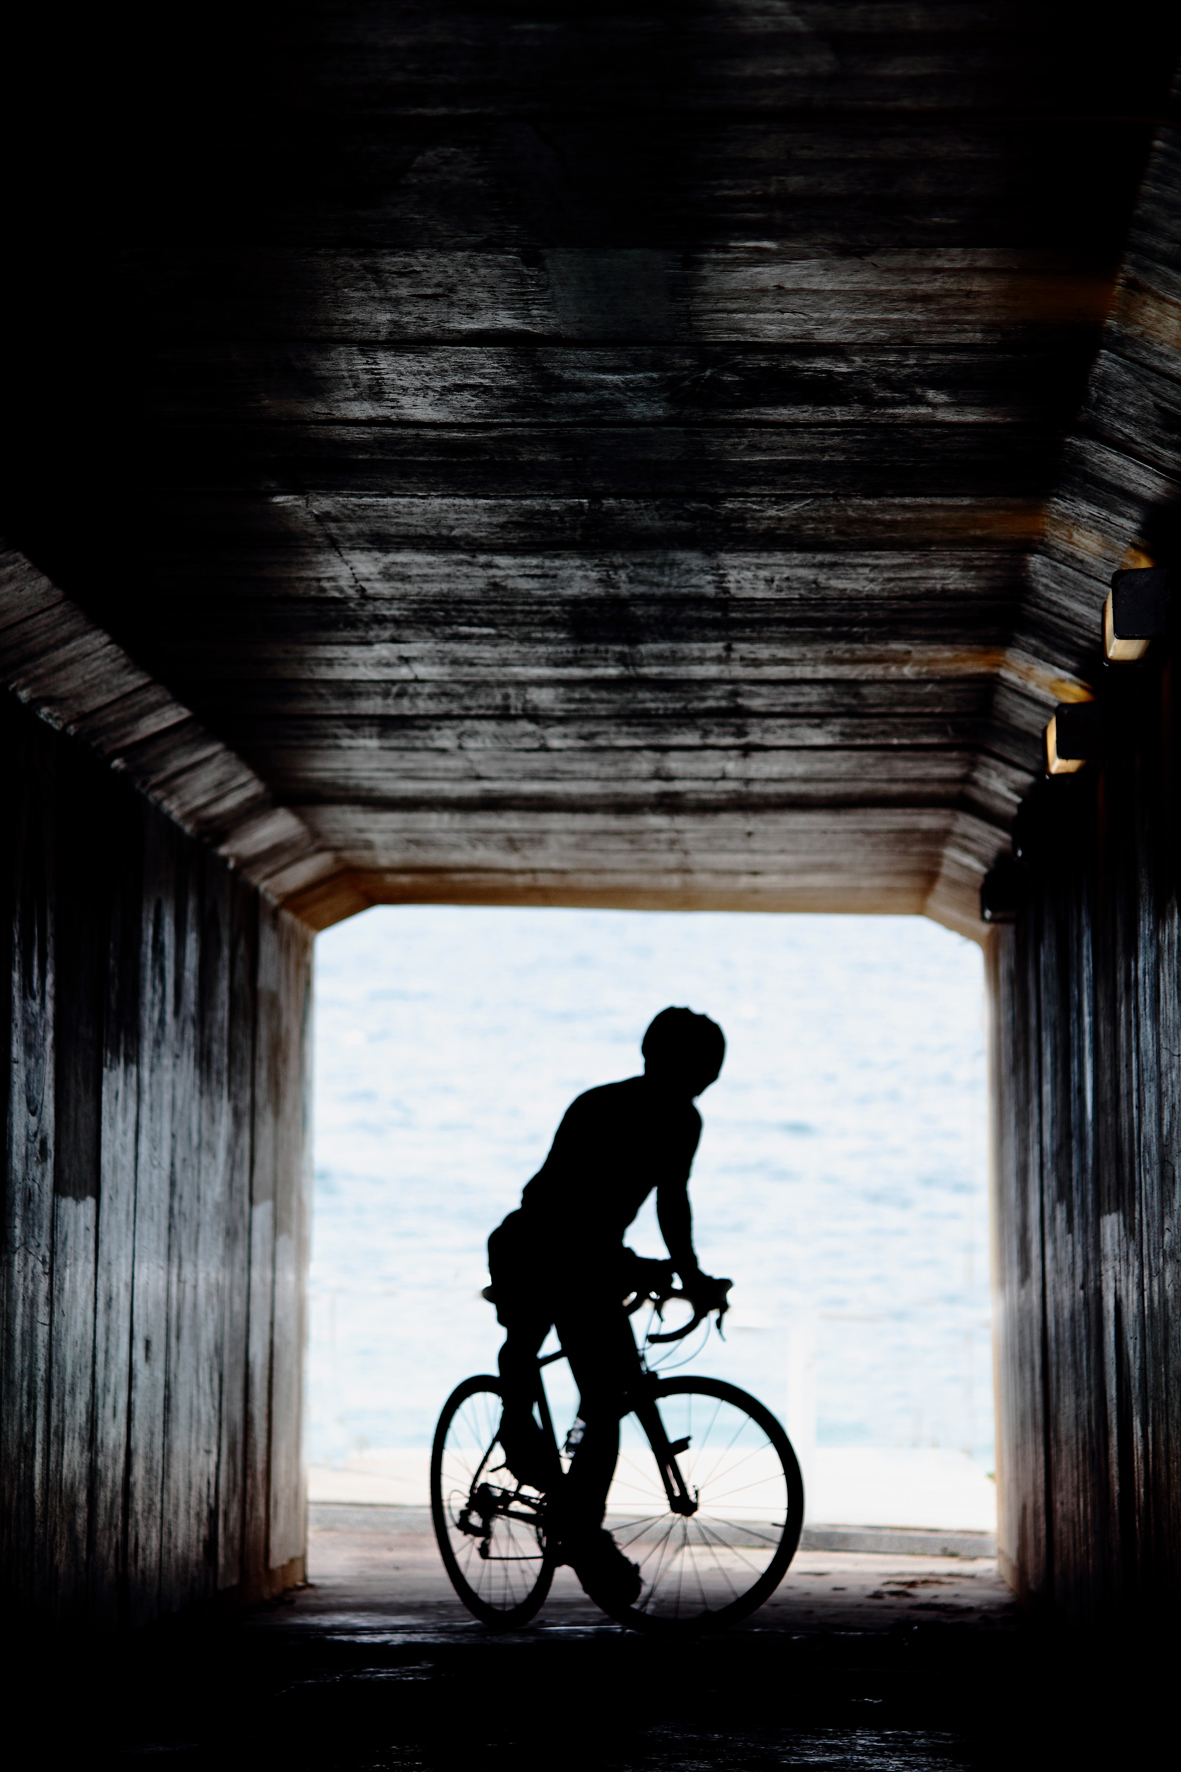 Cyclist in a tunnel silhouetted against the sea